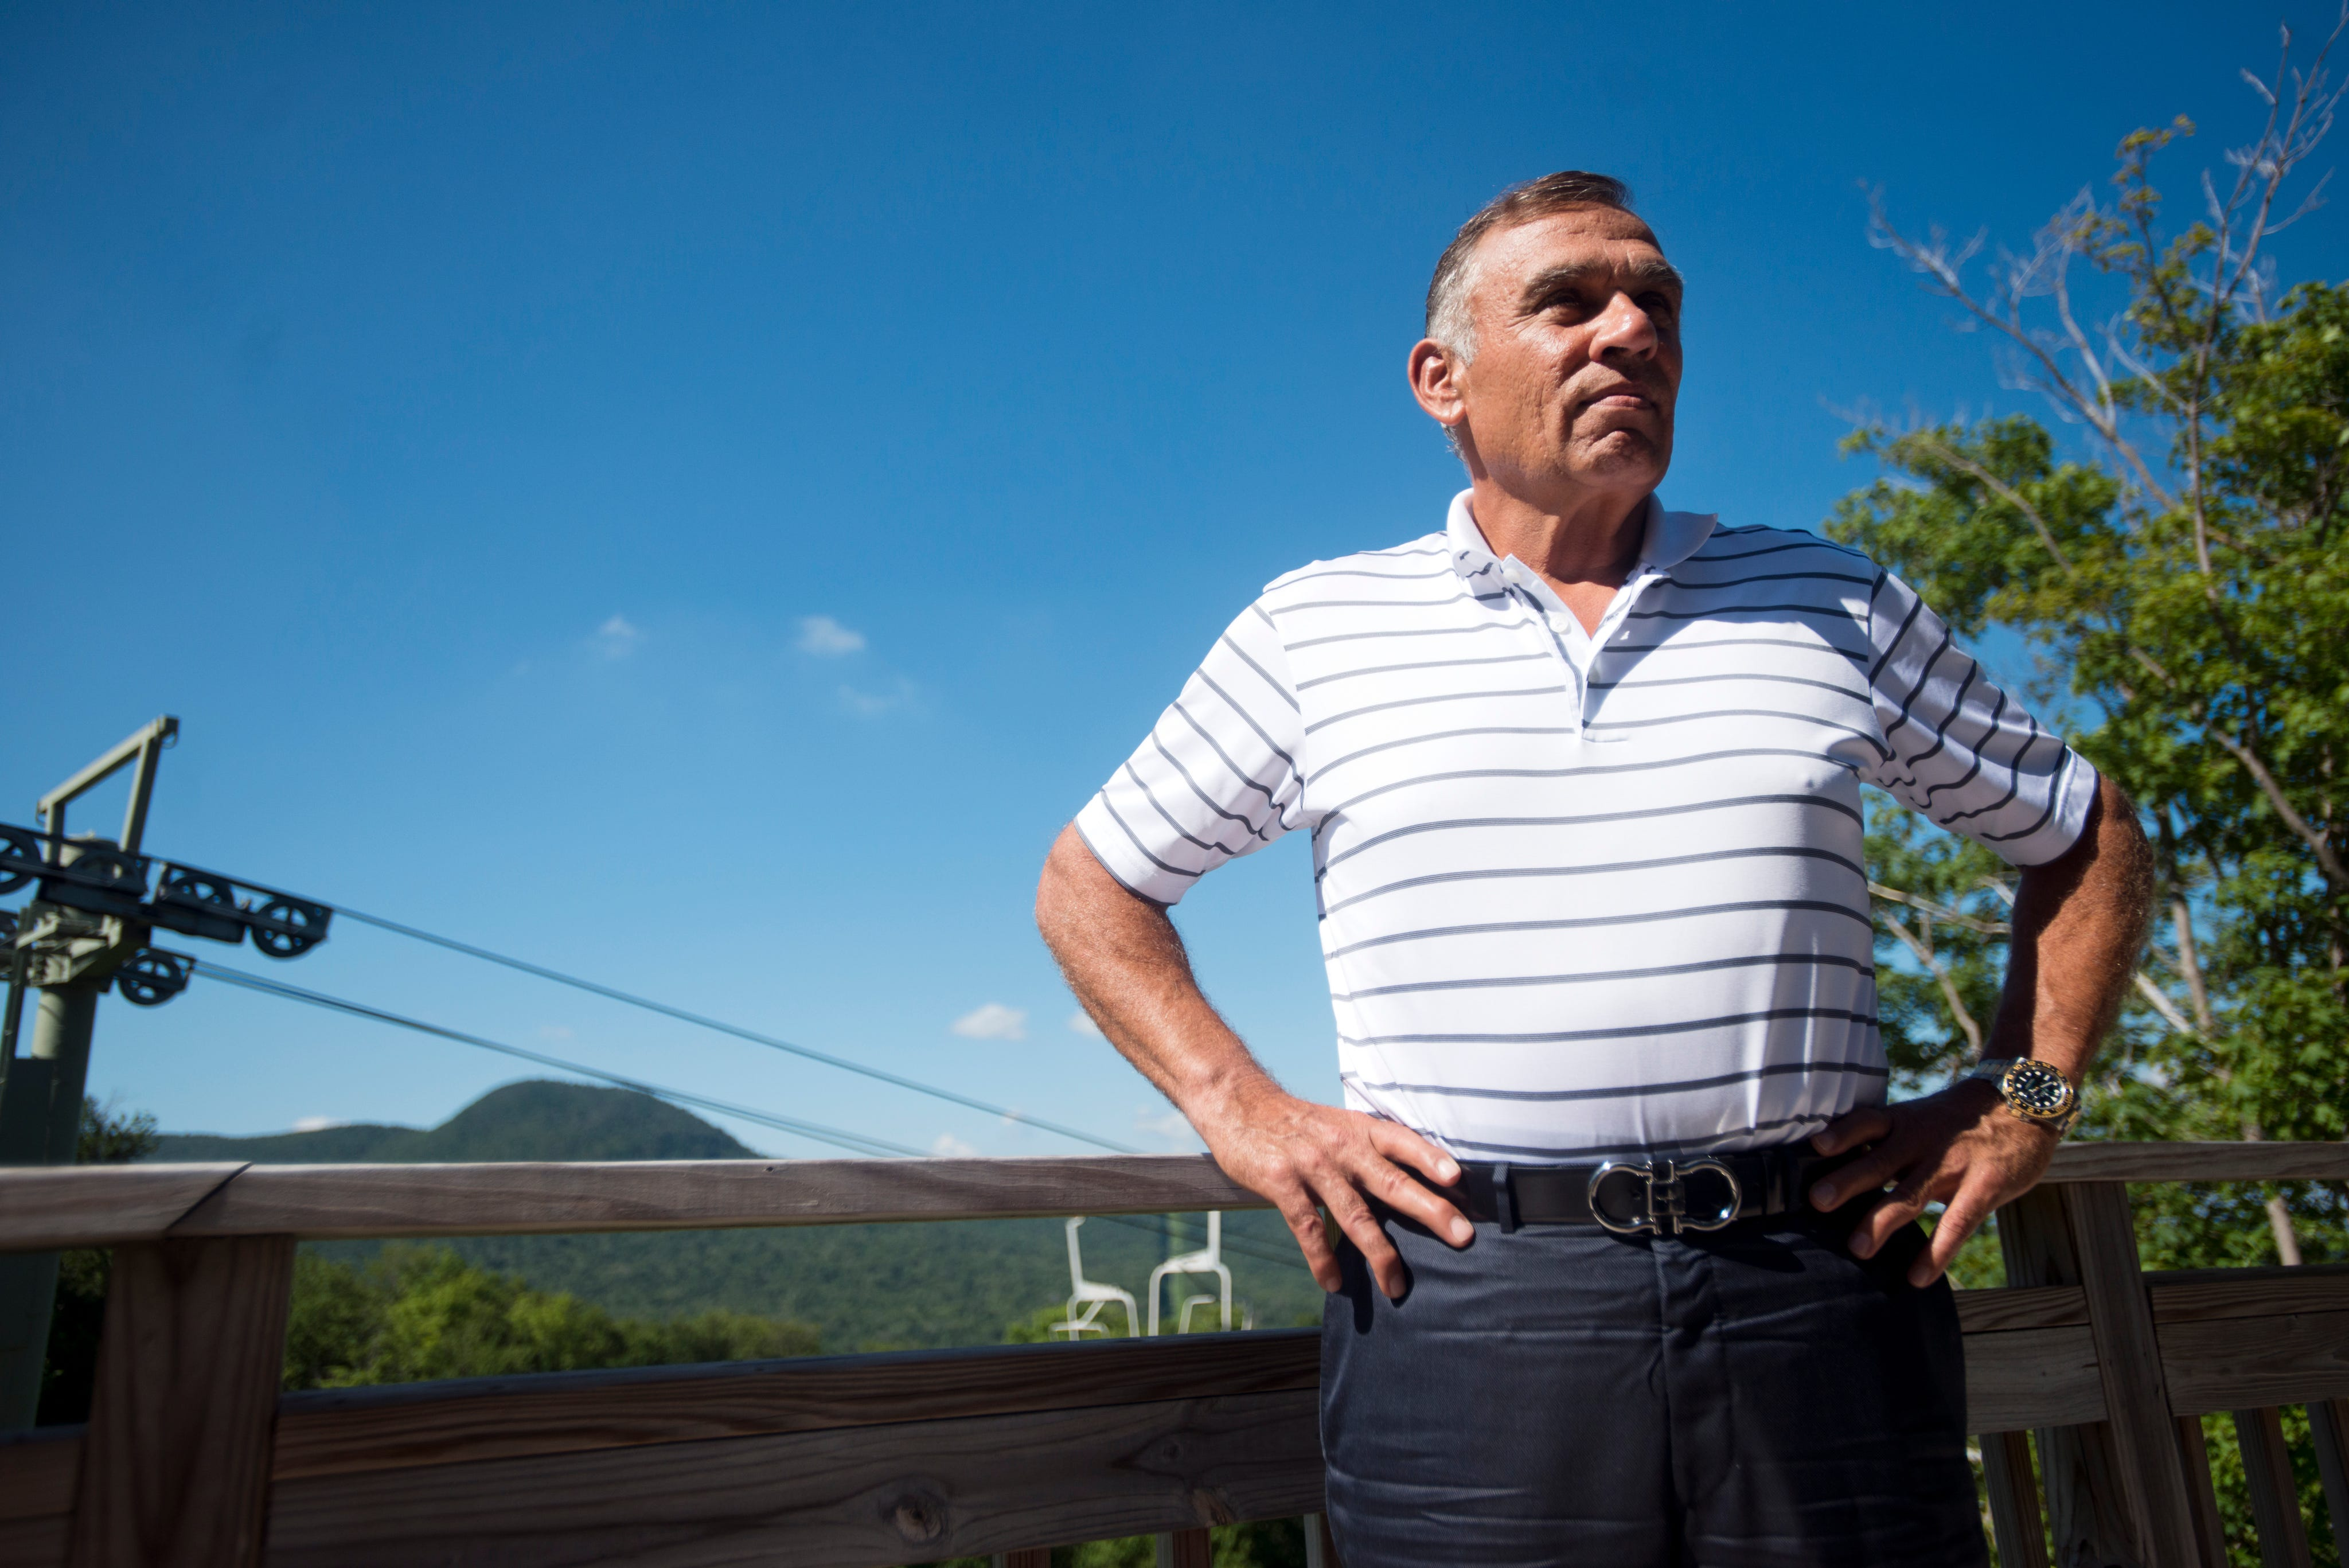 Ariel Quiros, owner of Jay Peak, stands on the porch of his condo at Jay Peak in 2013.